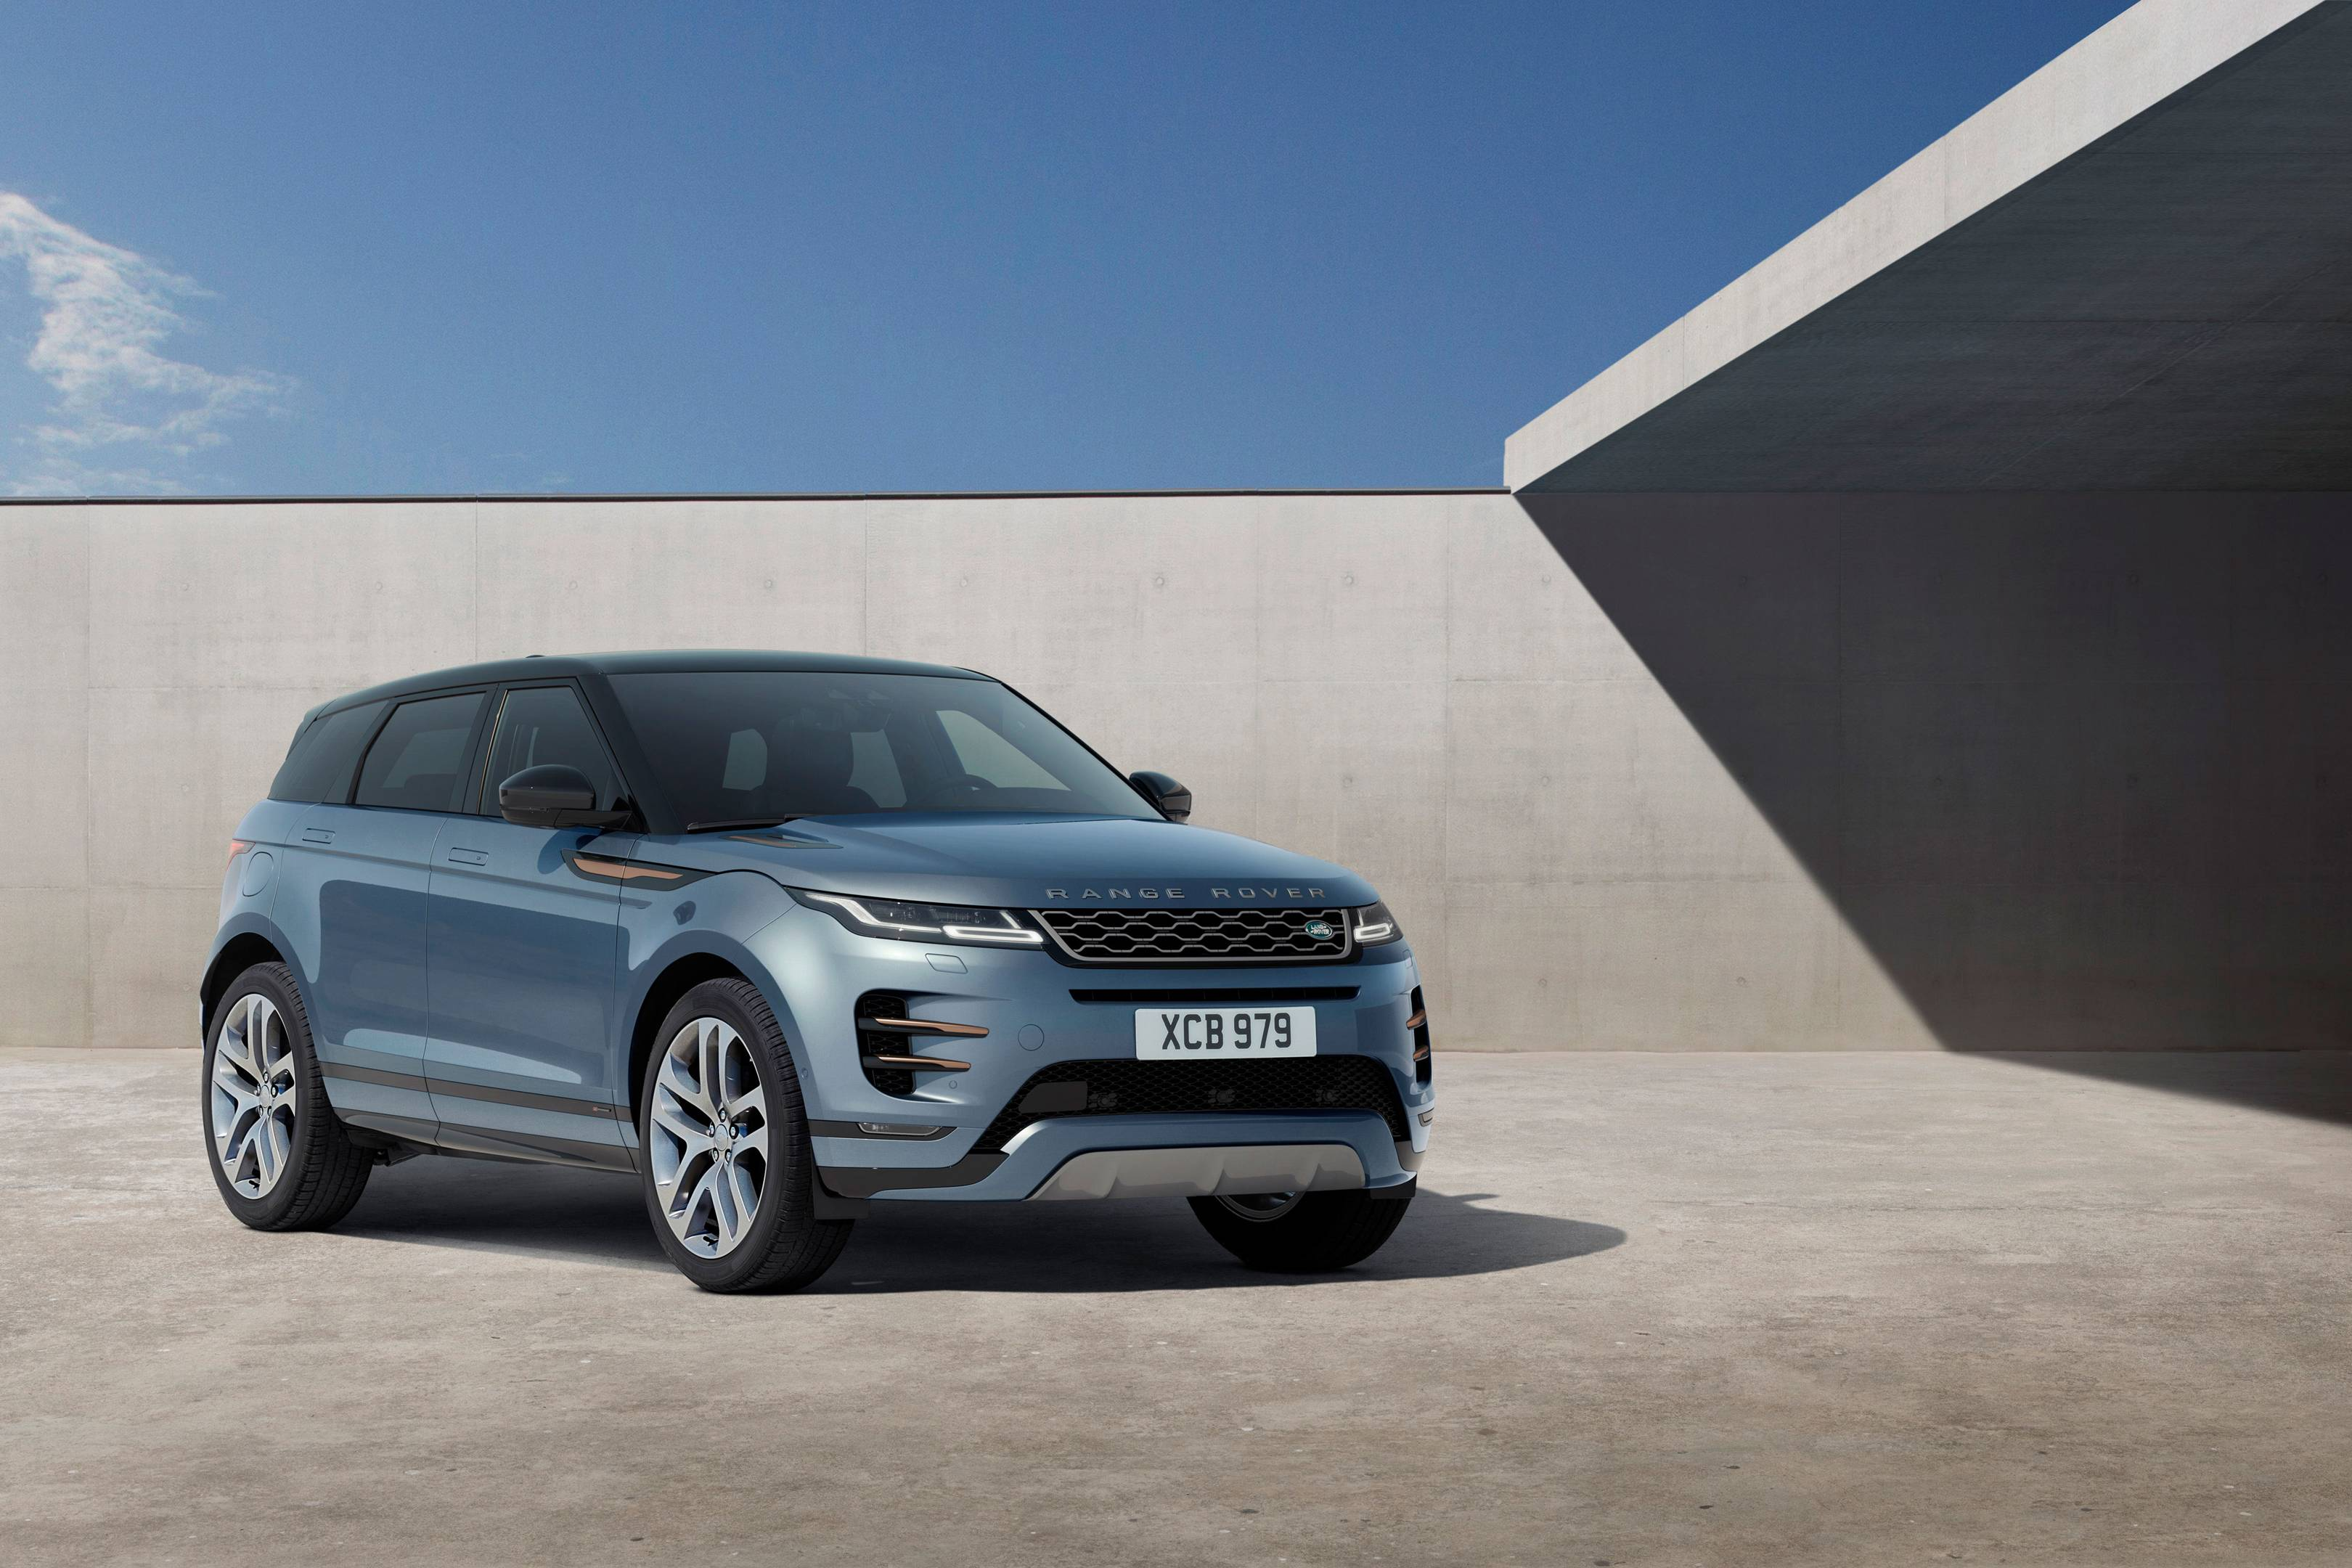 The New Range Rover Evoque Is A Hybrid Suv With Difference